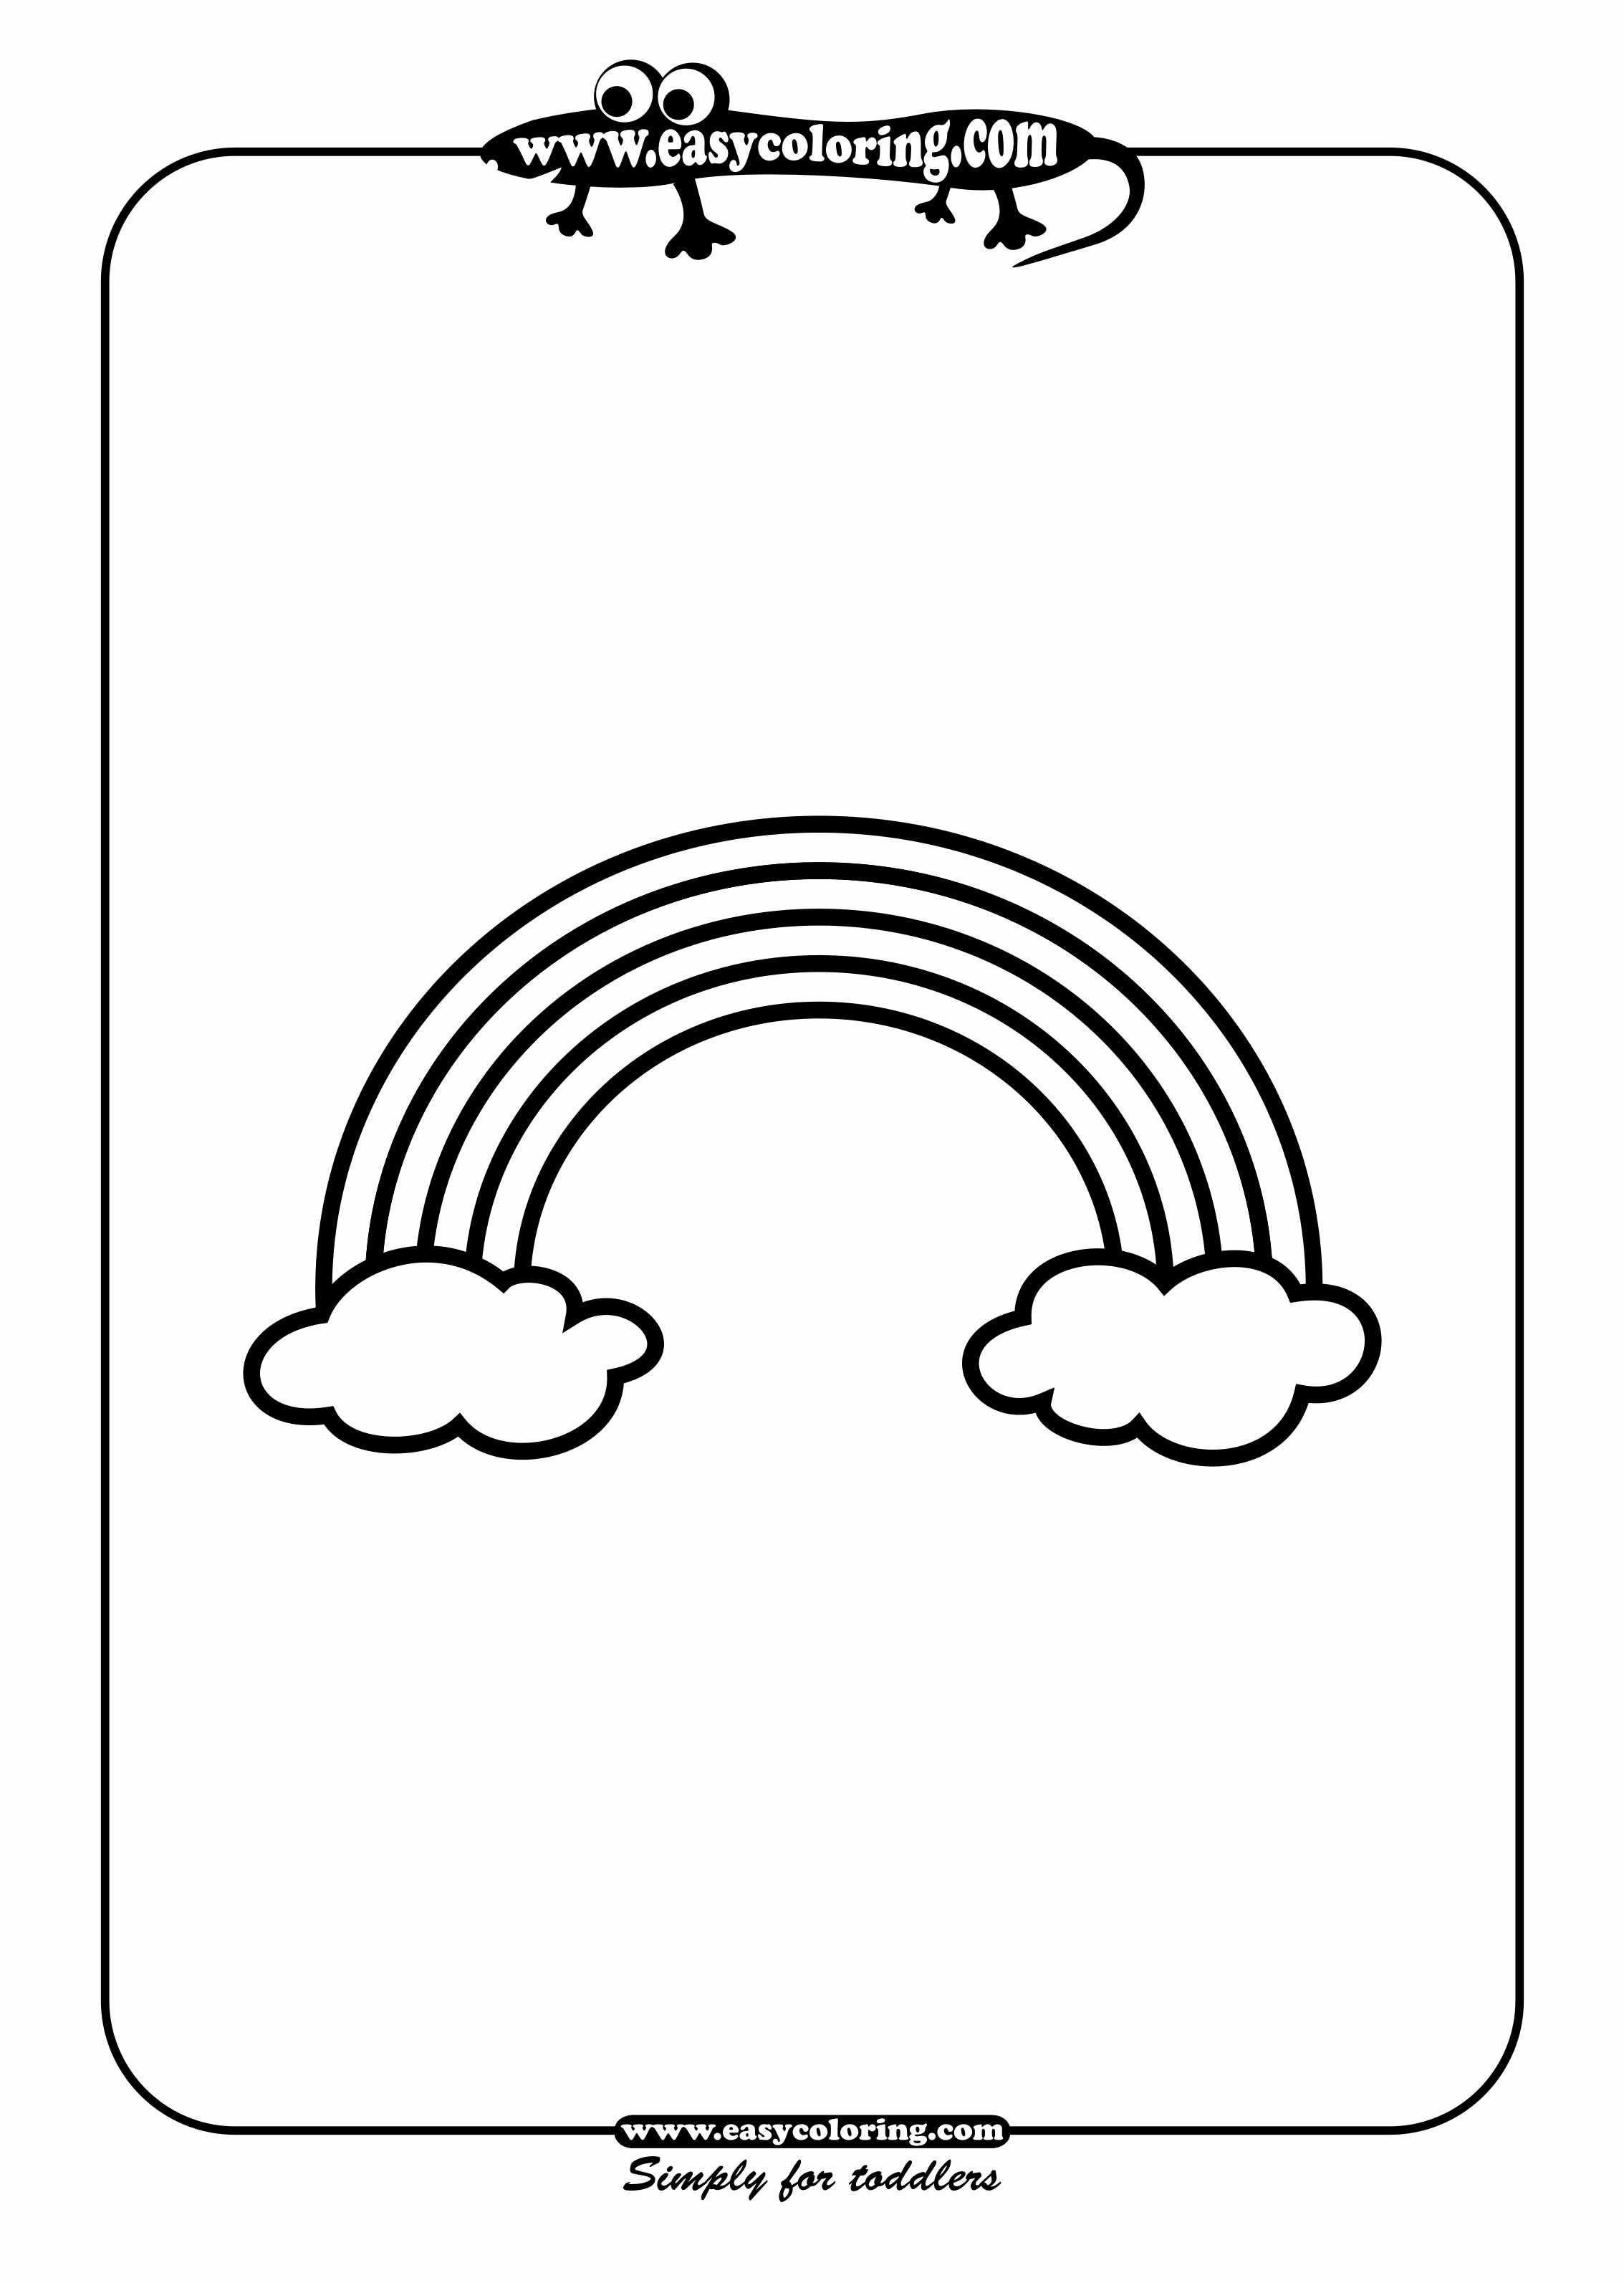 Simple Drawing For Toddlers